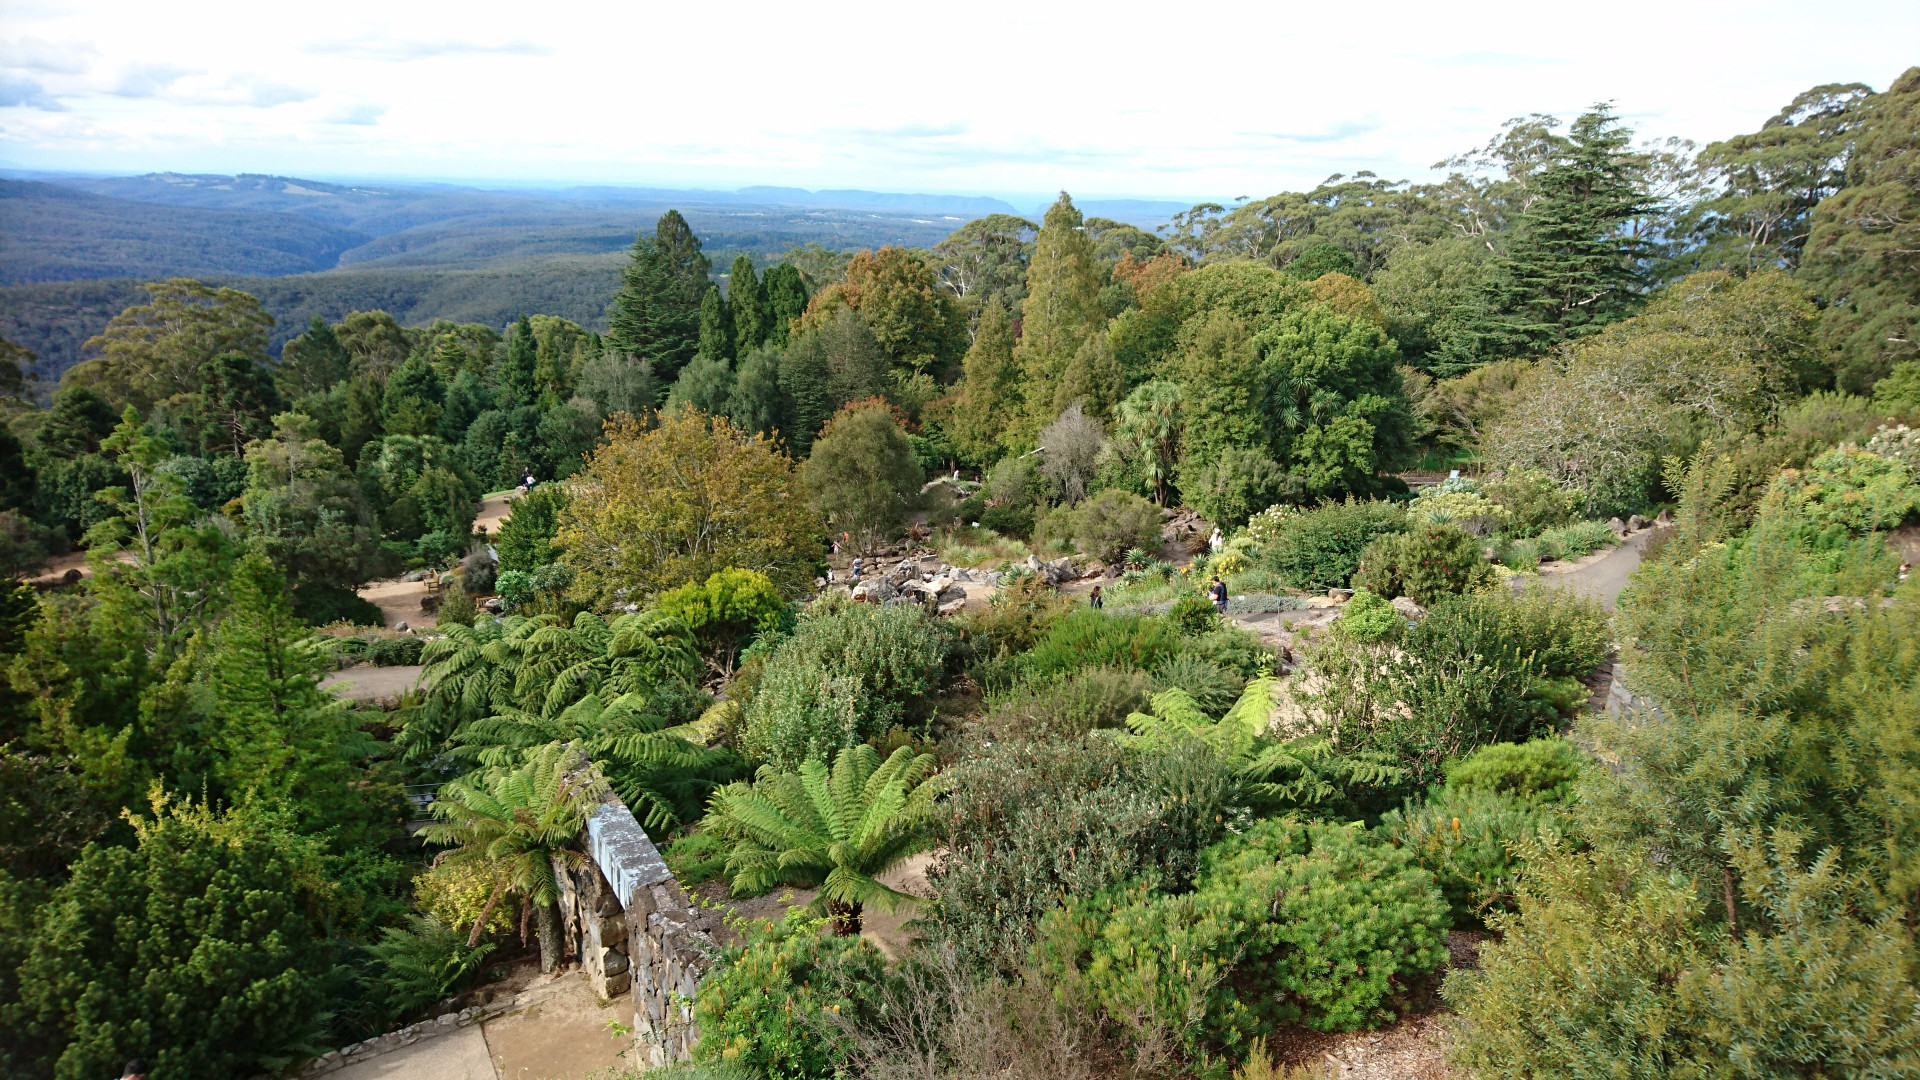 more stunning views looking down into the Rock Gardens